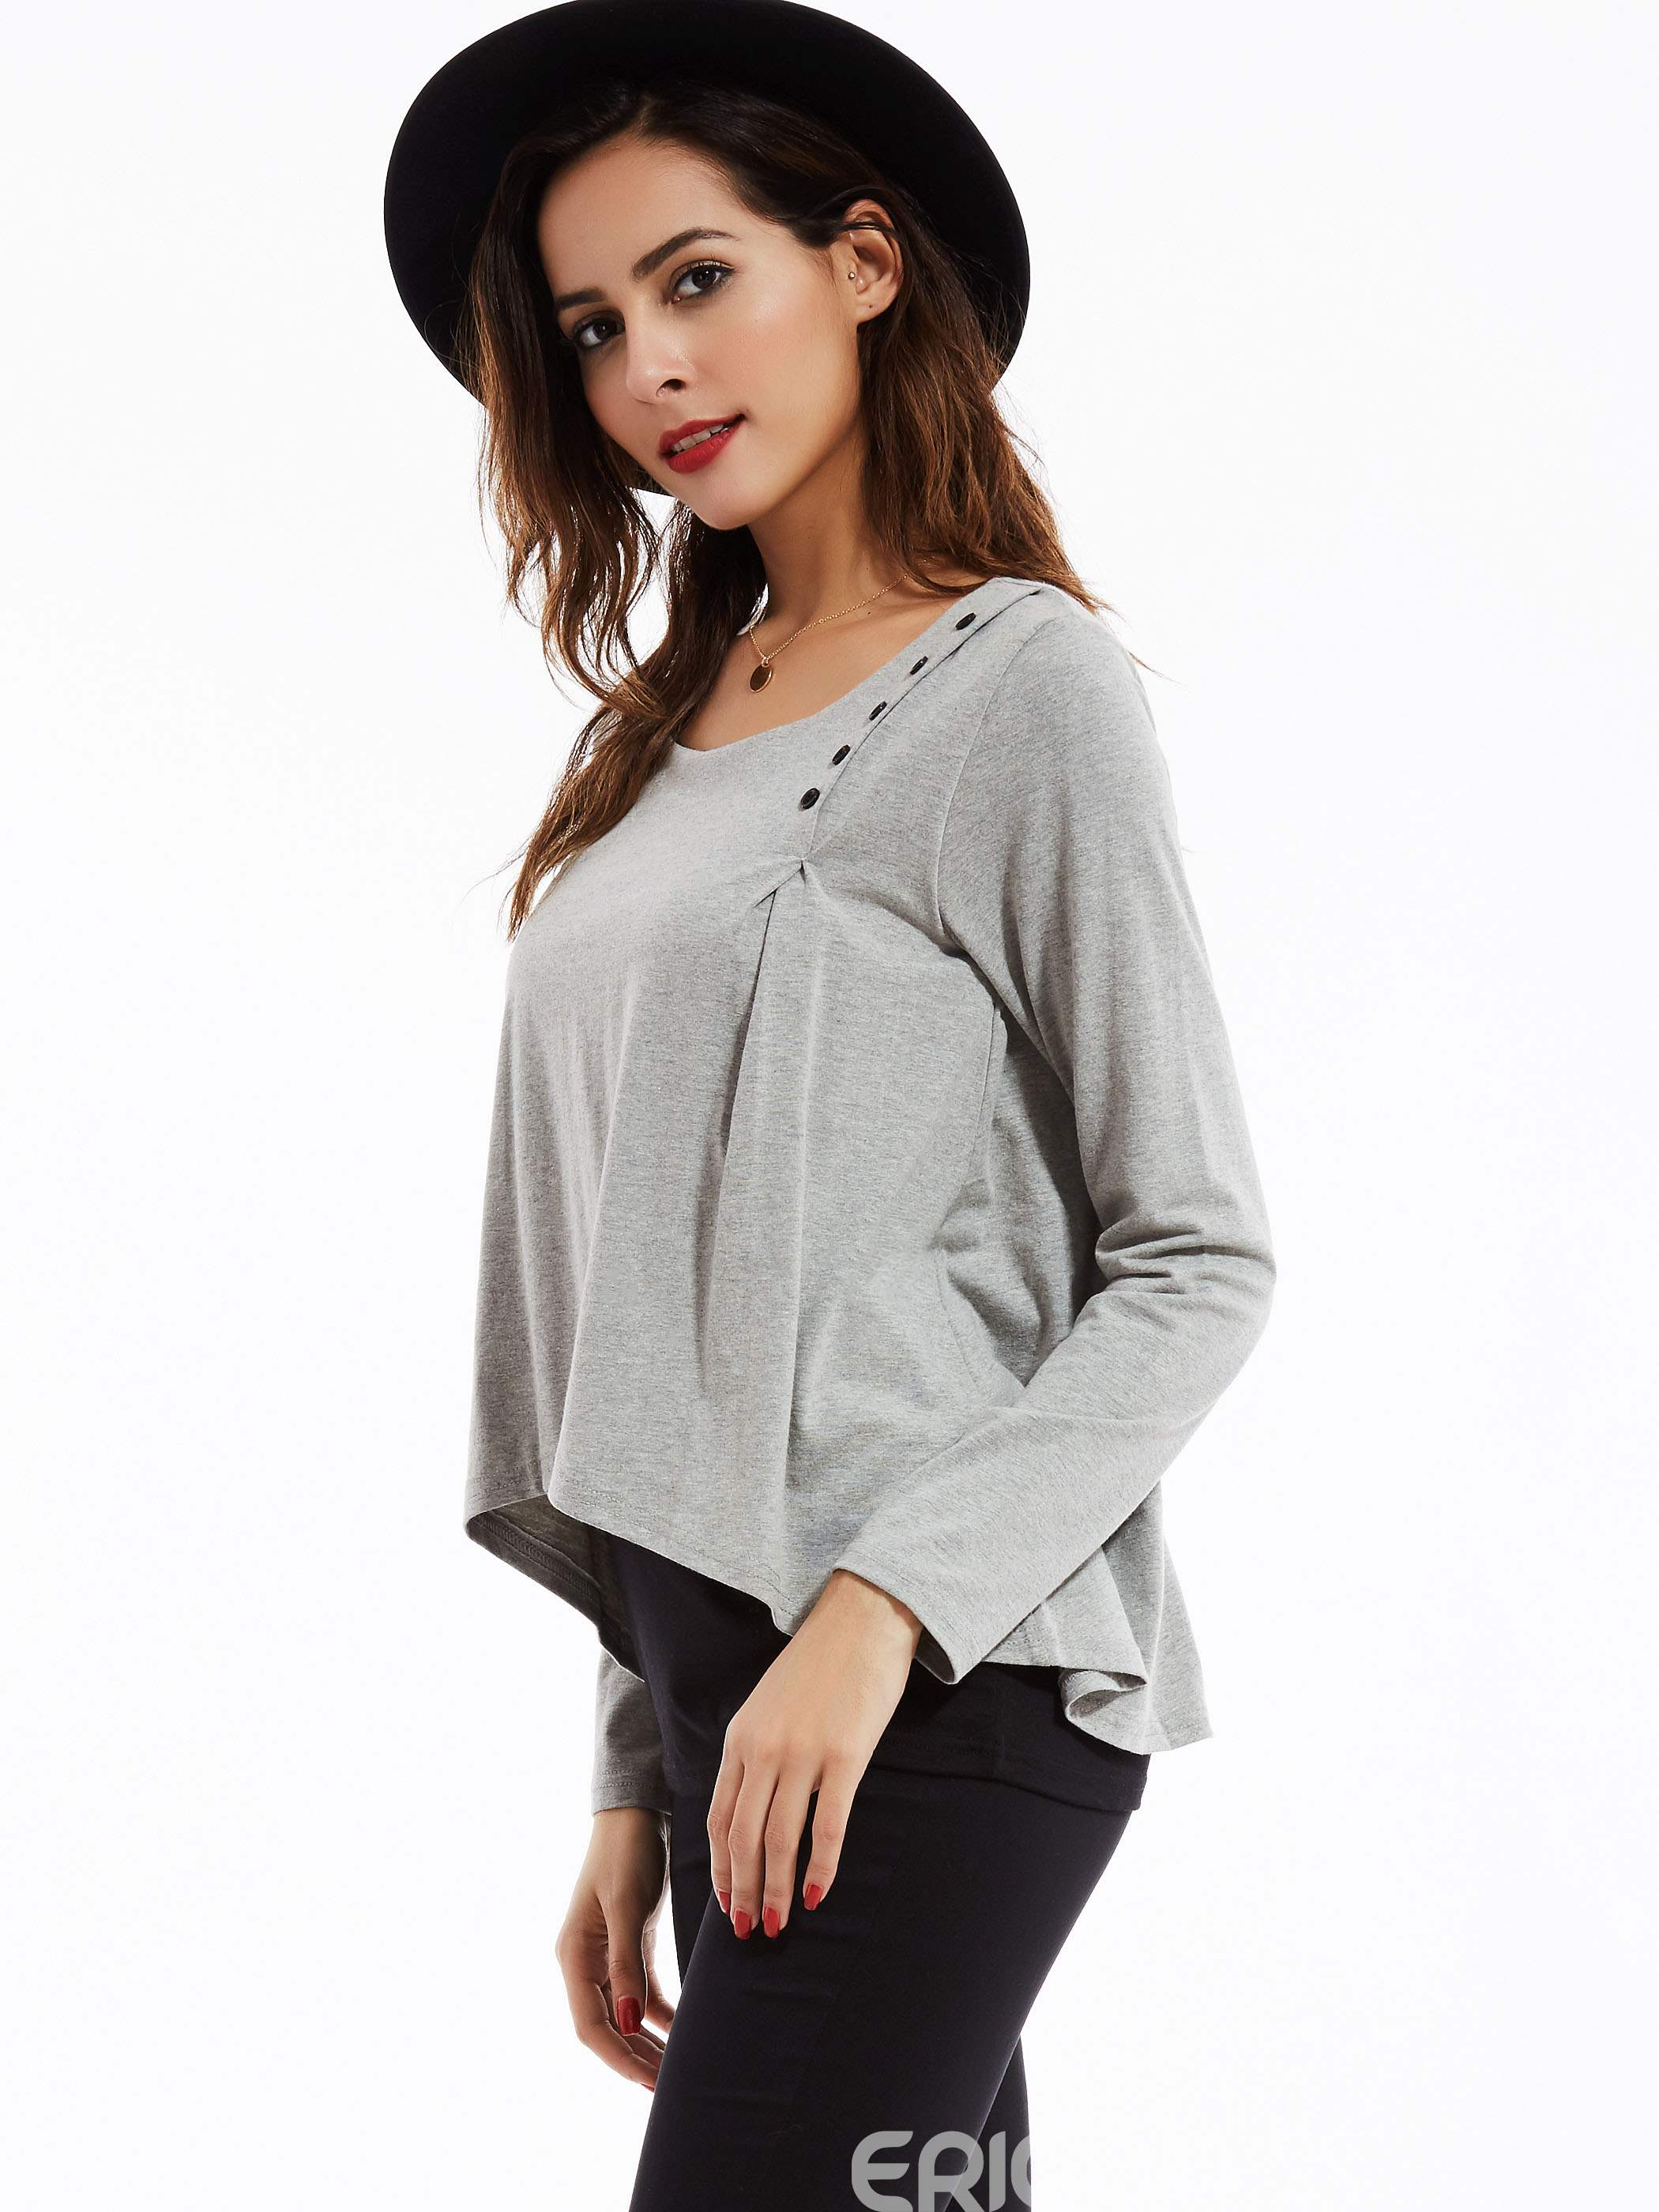 Ericdress Vogue Long-sleeved Tunic T-shirt